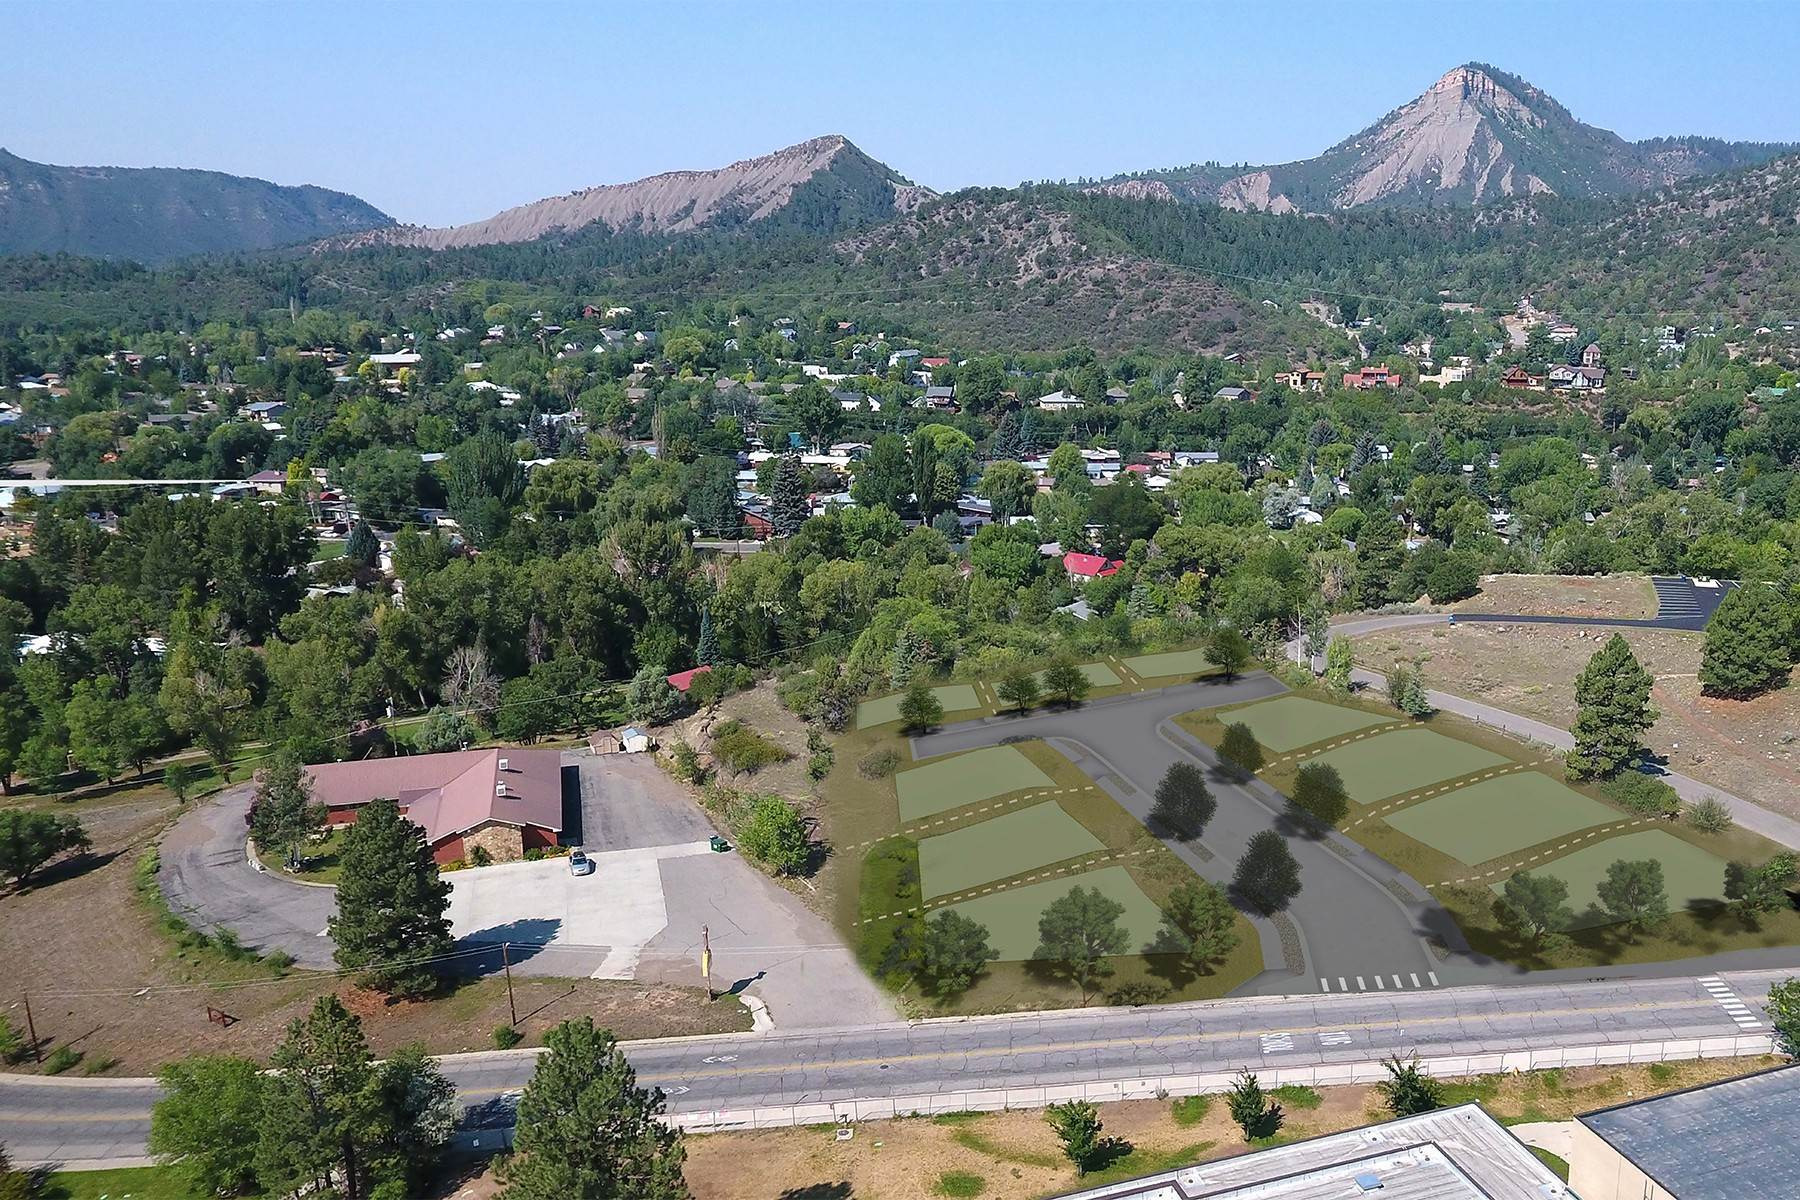 Property for Sale at 15 Calle de Rincon Durango, Colorado 81301 United States